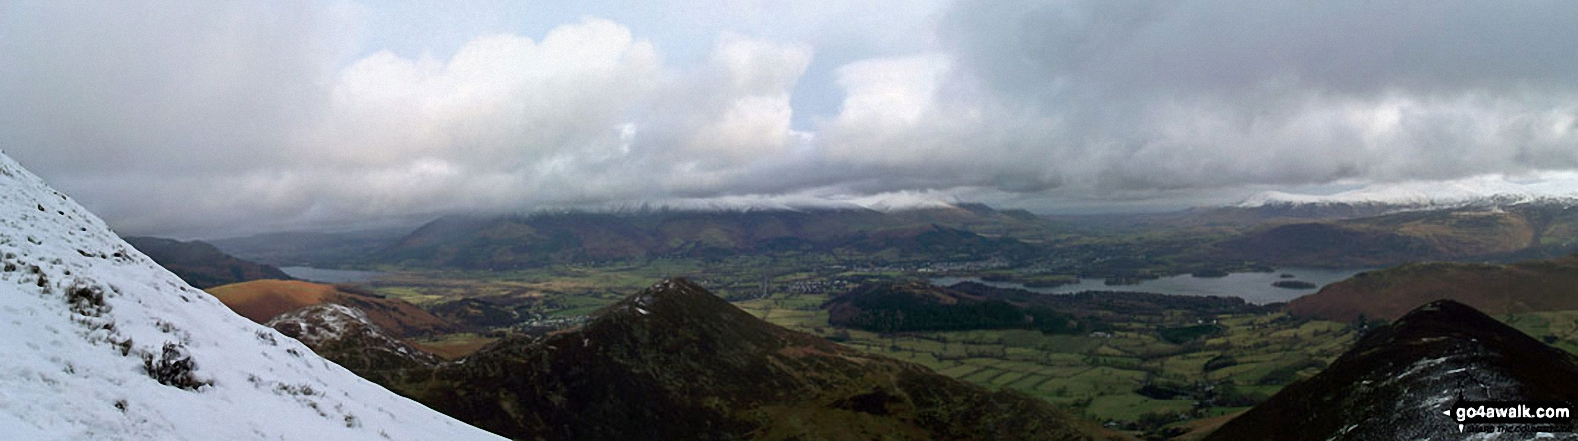 Barrow and Rowling End, with Keswick and Derwent Water beyond and Skiddaw and Blecathra (or Saddleback) in the background from Causey Pike